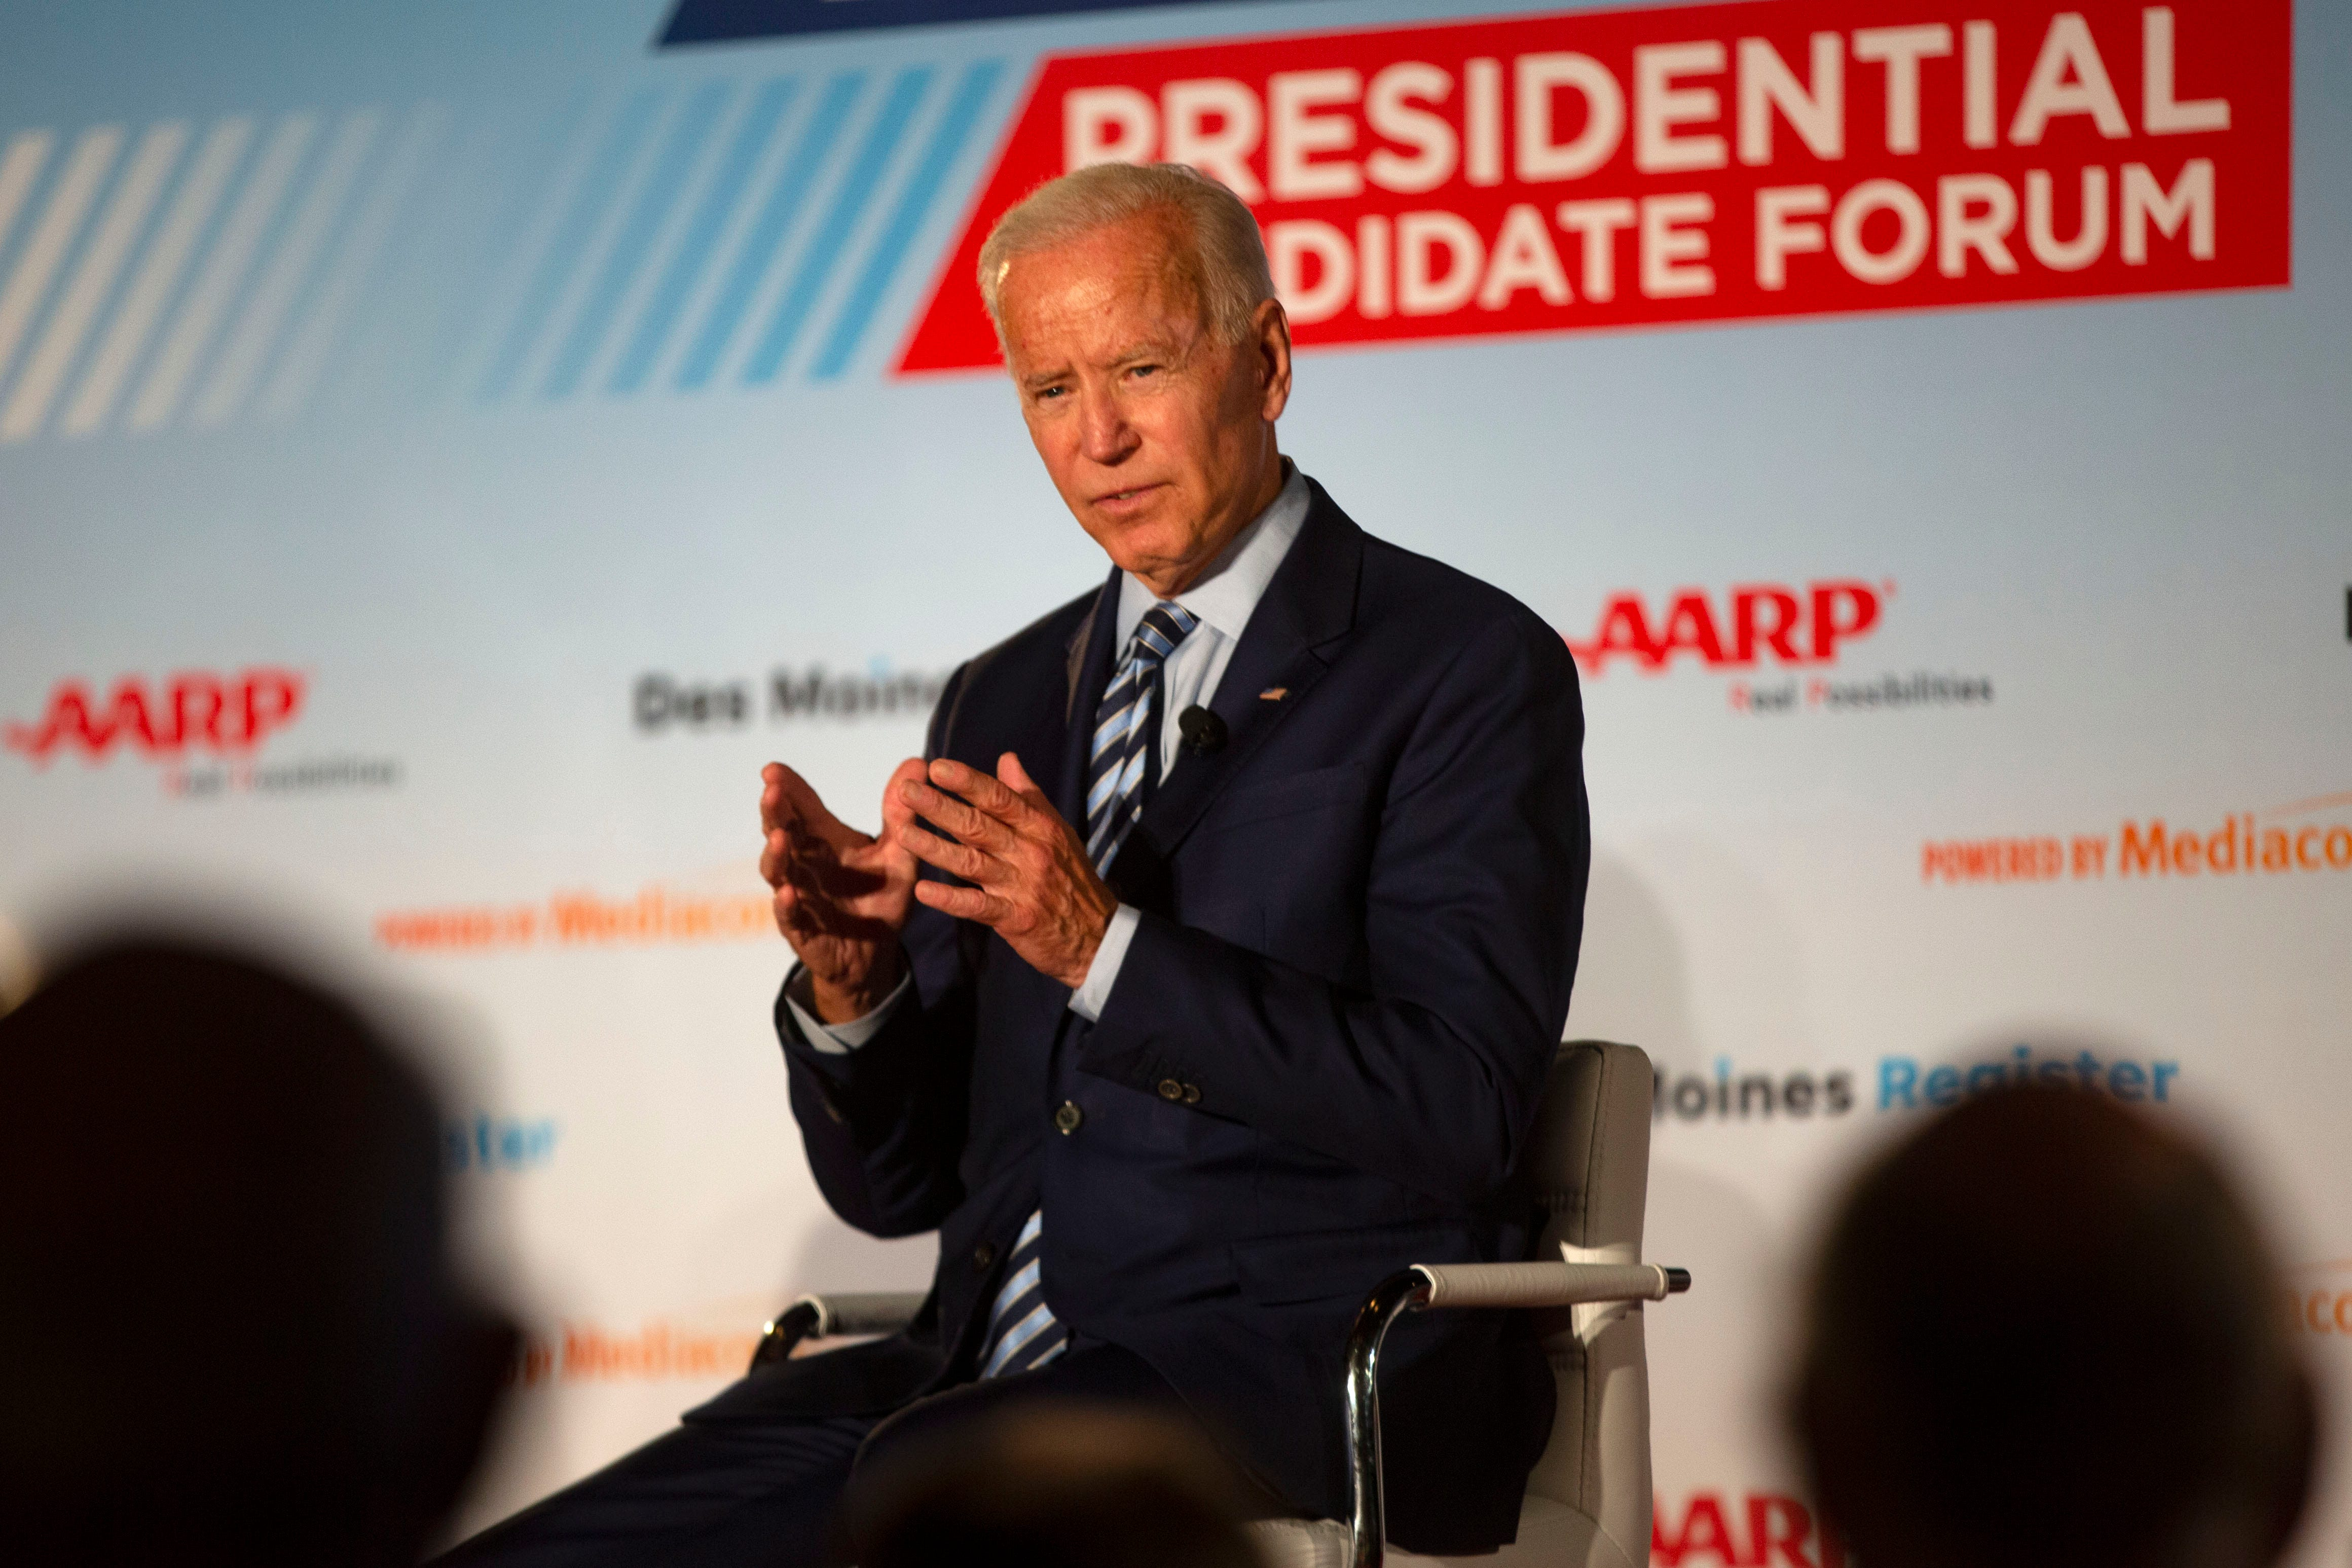 Biden remarks on gene sequencing, leans on moderator Kay Henderson at AARP Forum